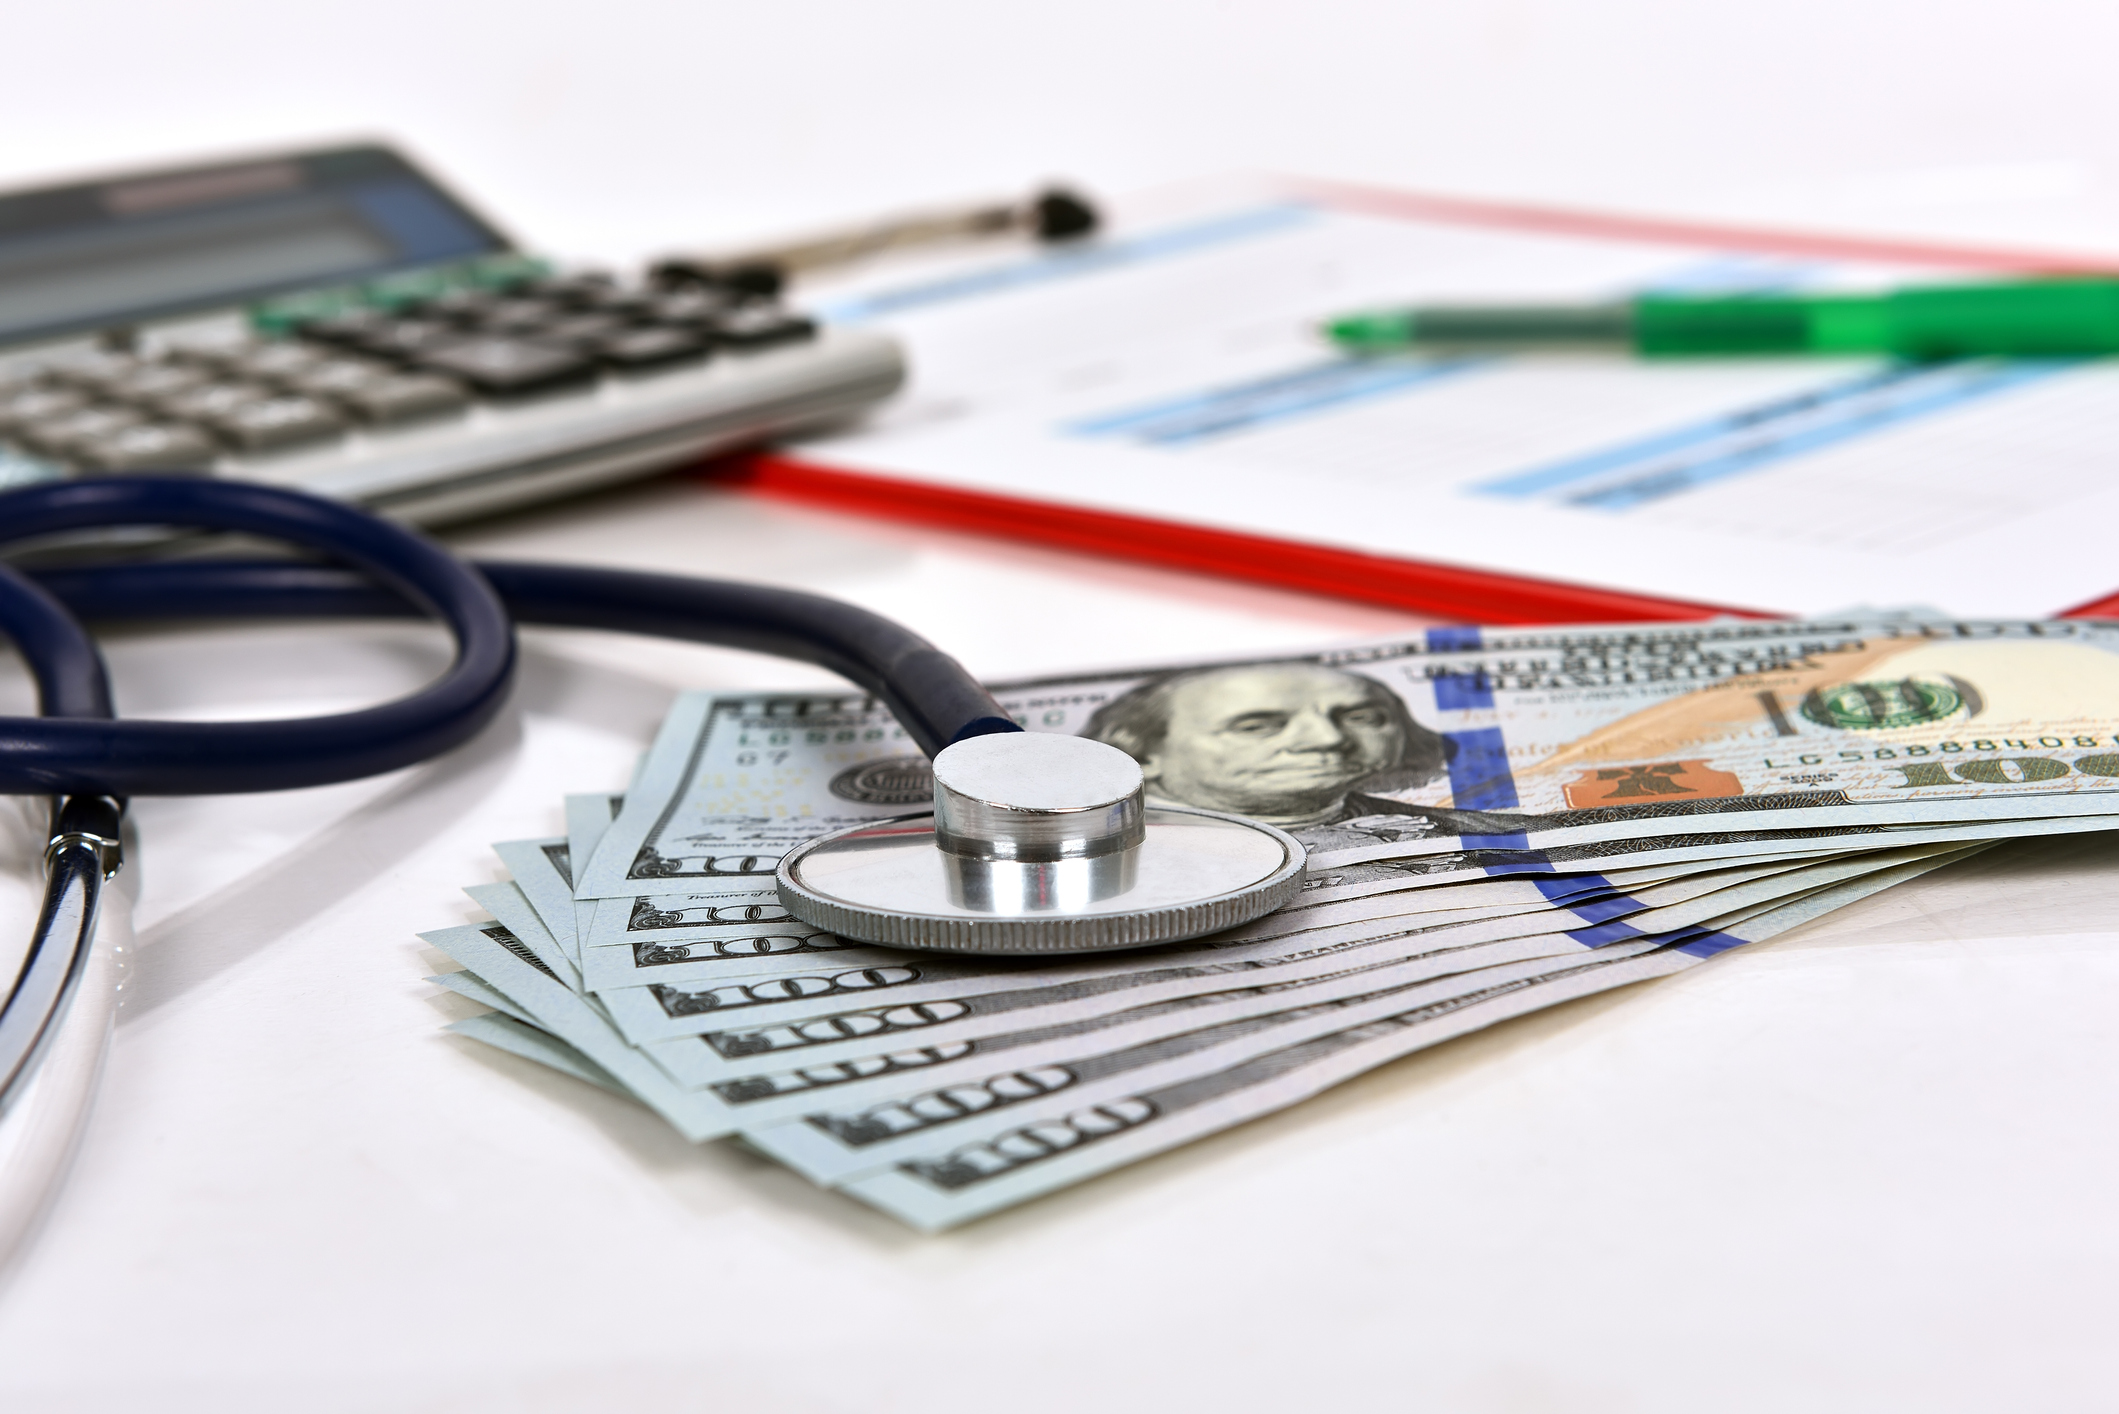 Value-based care & payment models